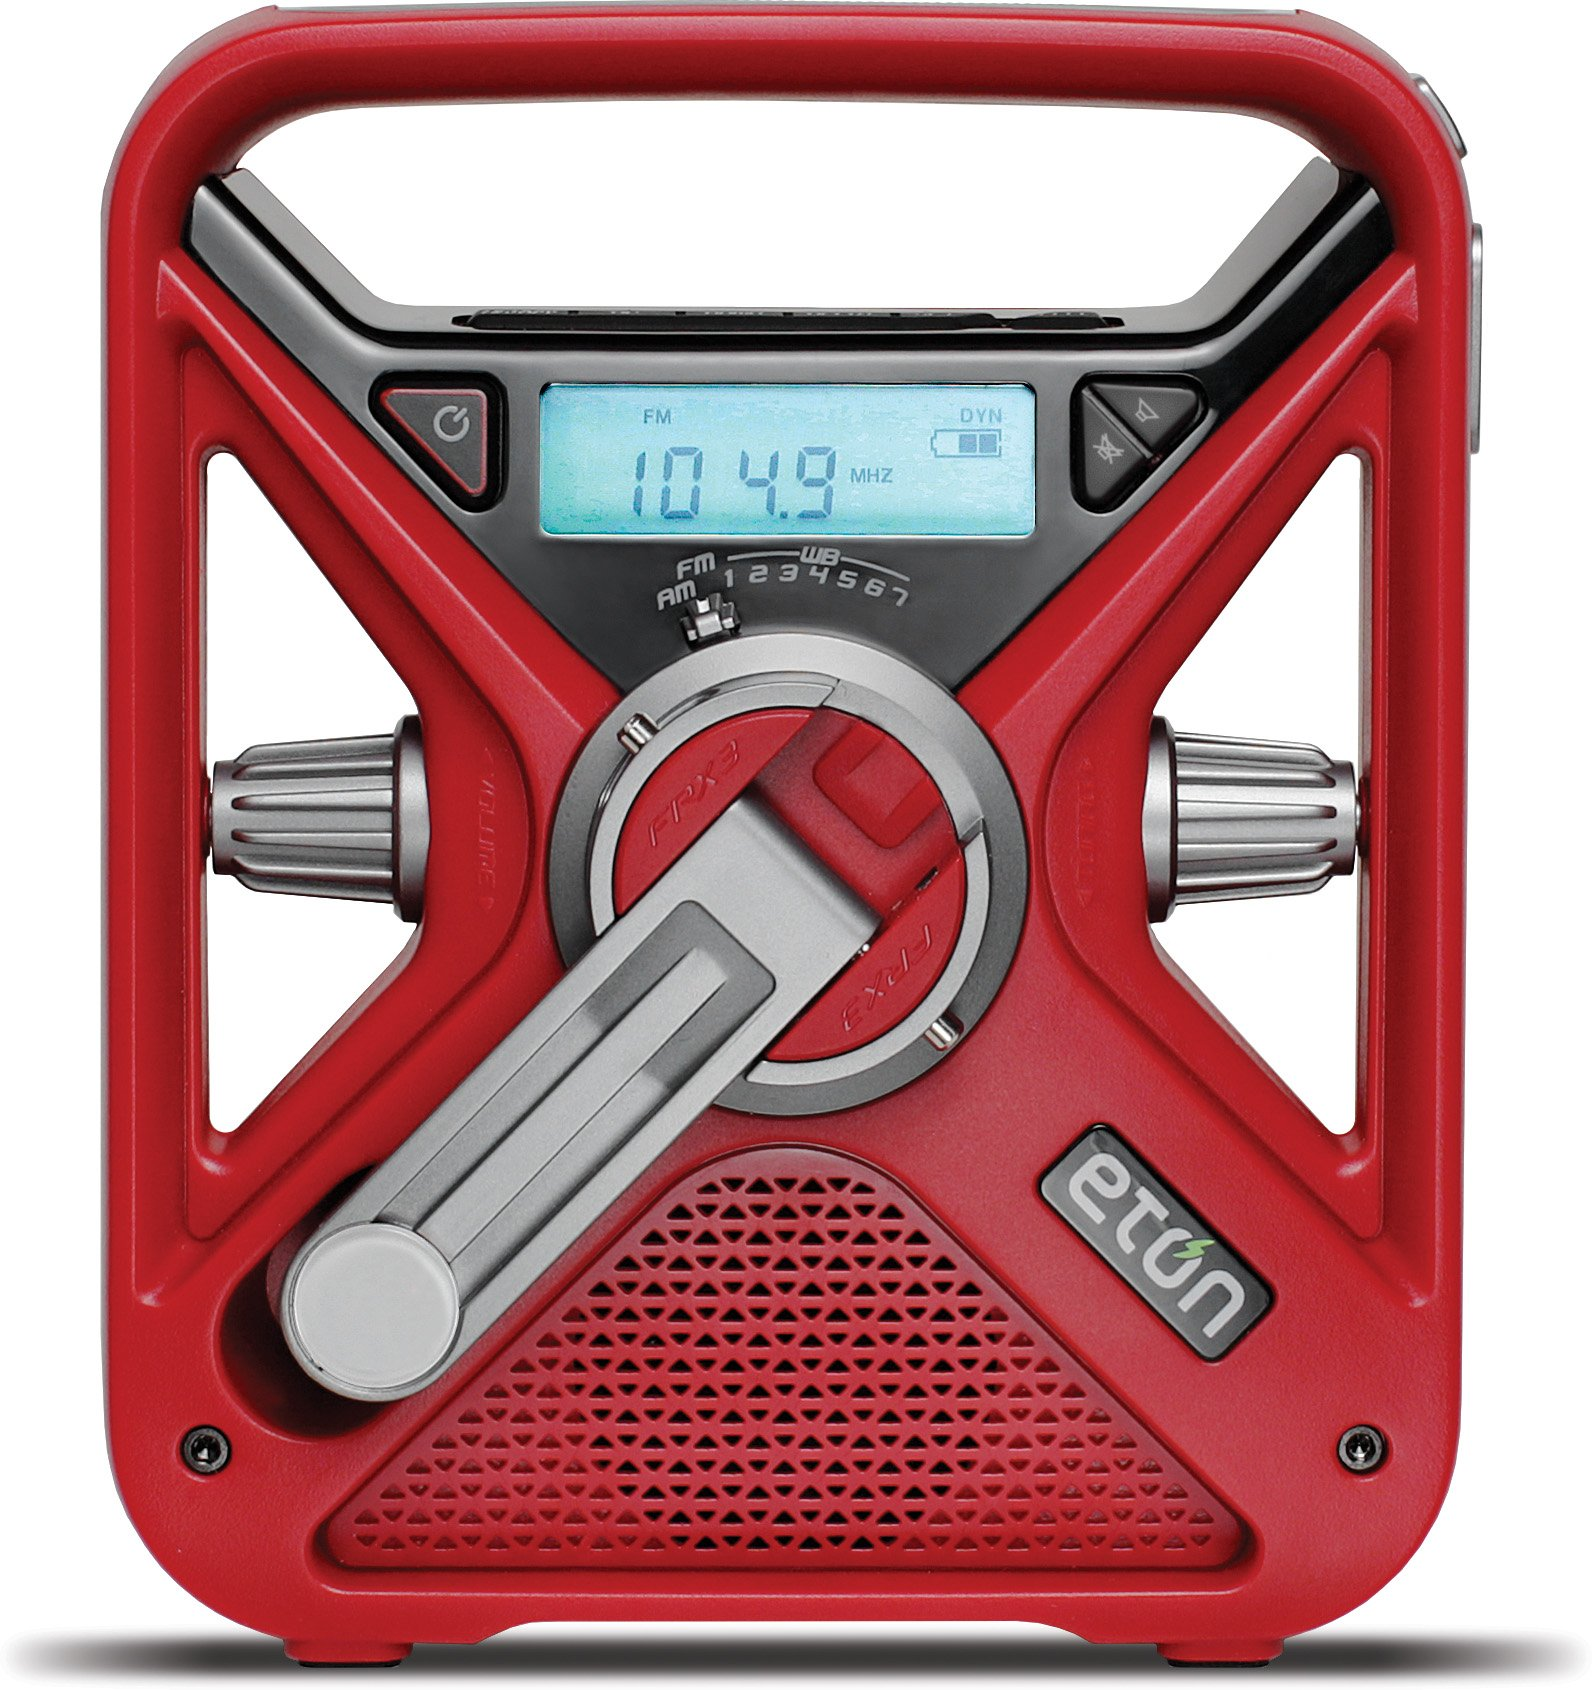 The American Red Cross FRX3 Hand Crank NOAA AM/FM Weather Alert Radio with Smartphone Charger, ARCFRX3WXR by Eton